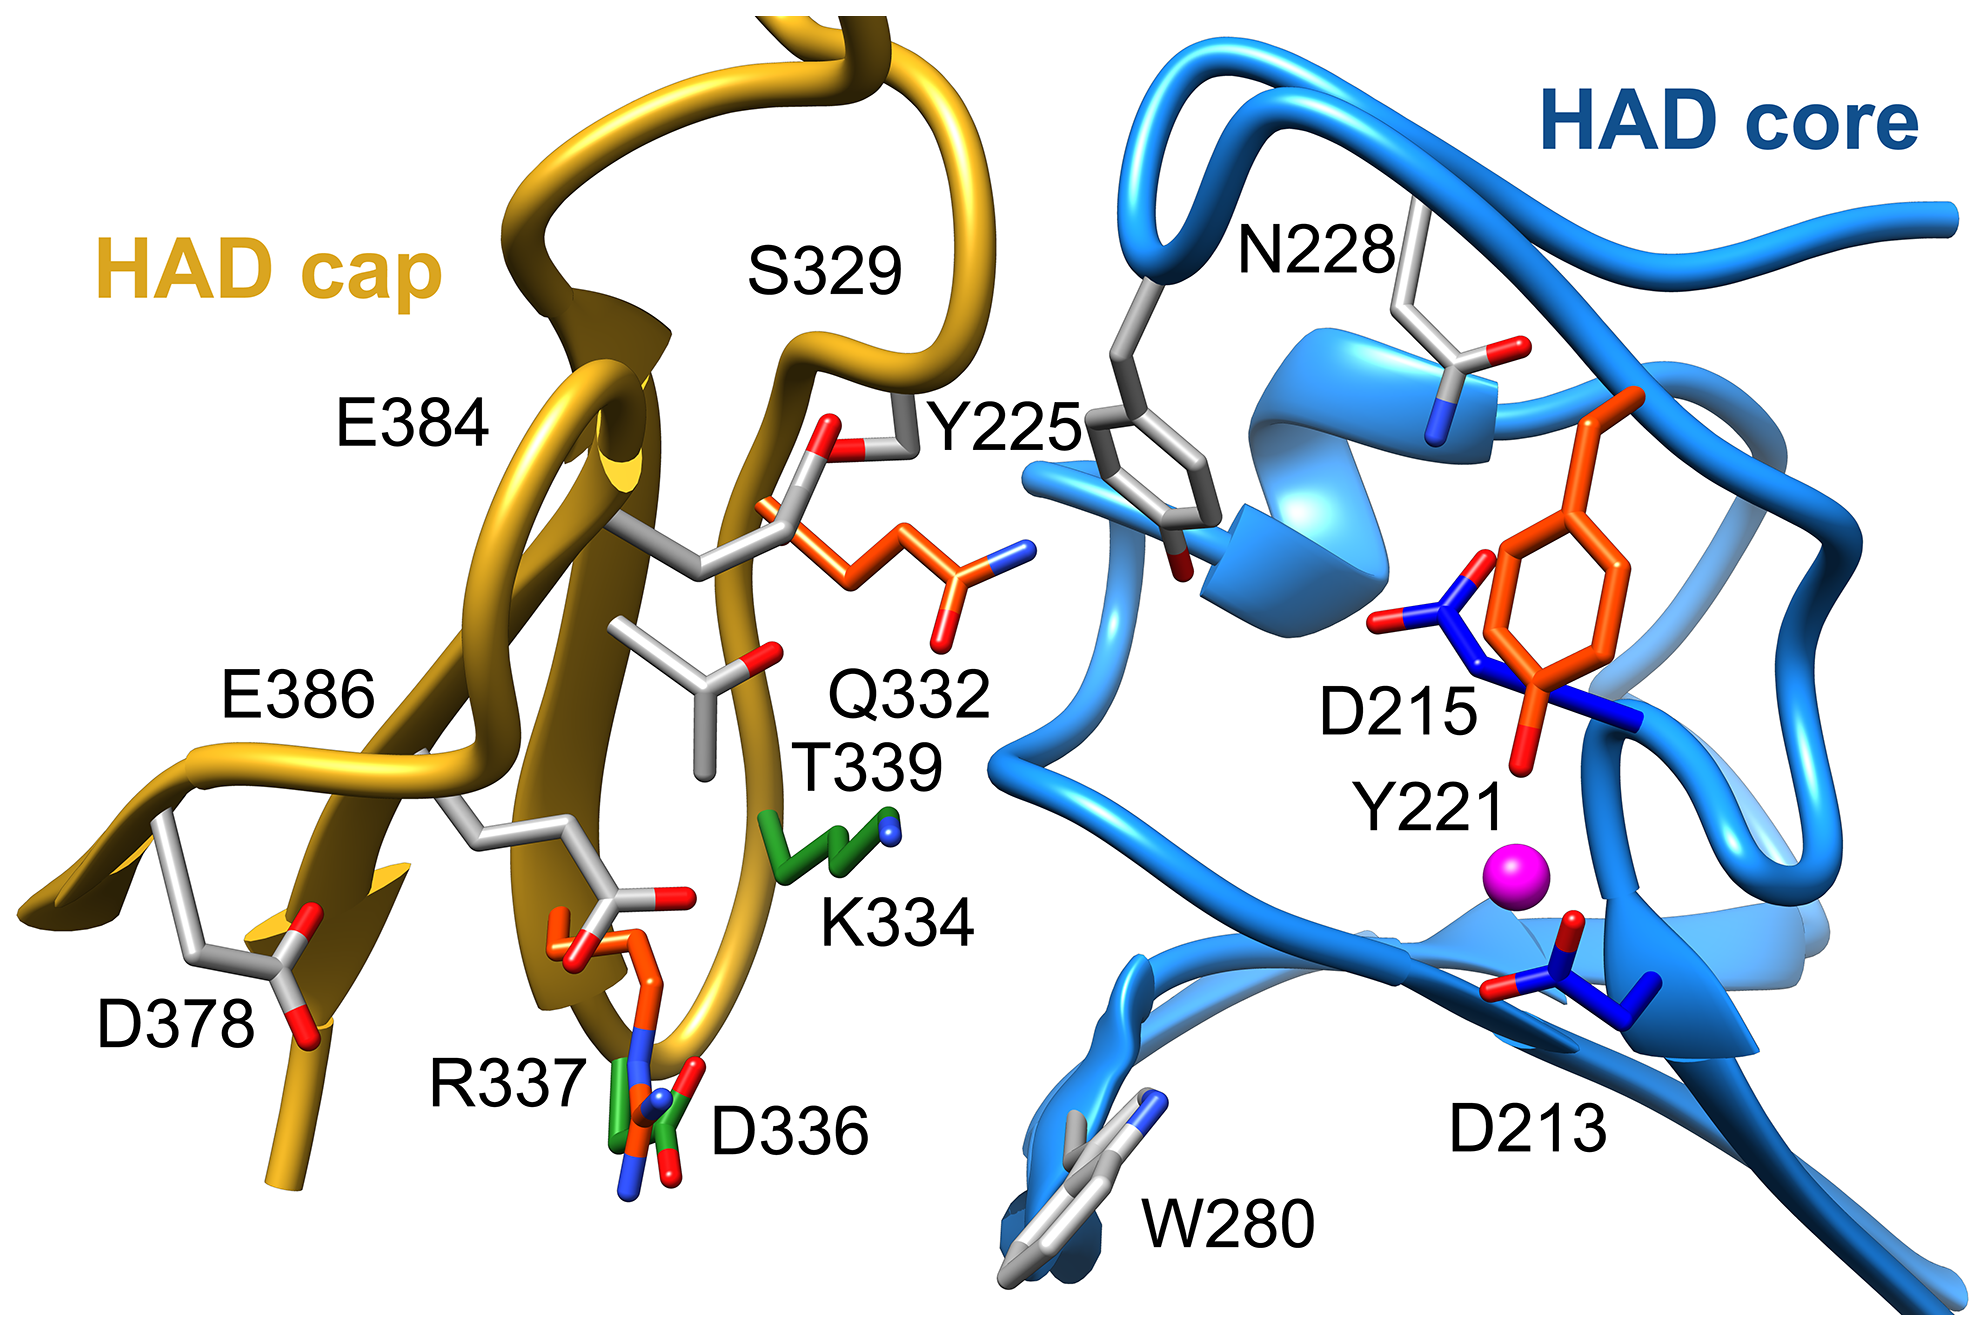 Putative substrate interacting residues in <i>B. malayi</i> analyzed by mutagenesis and kinetics.